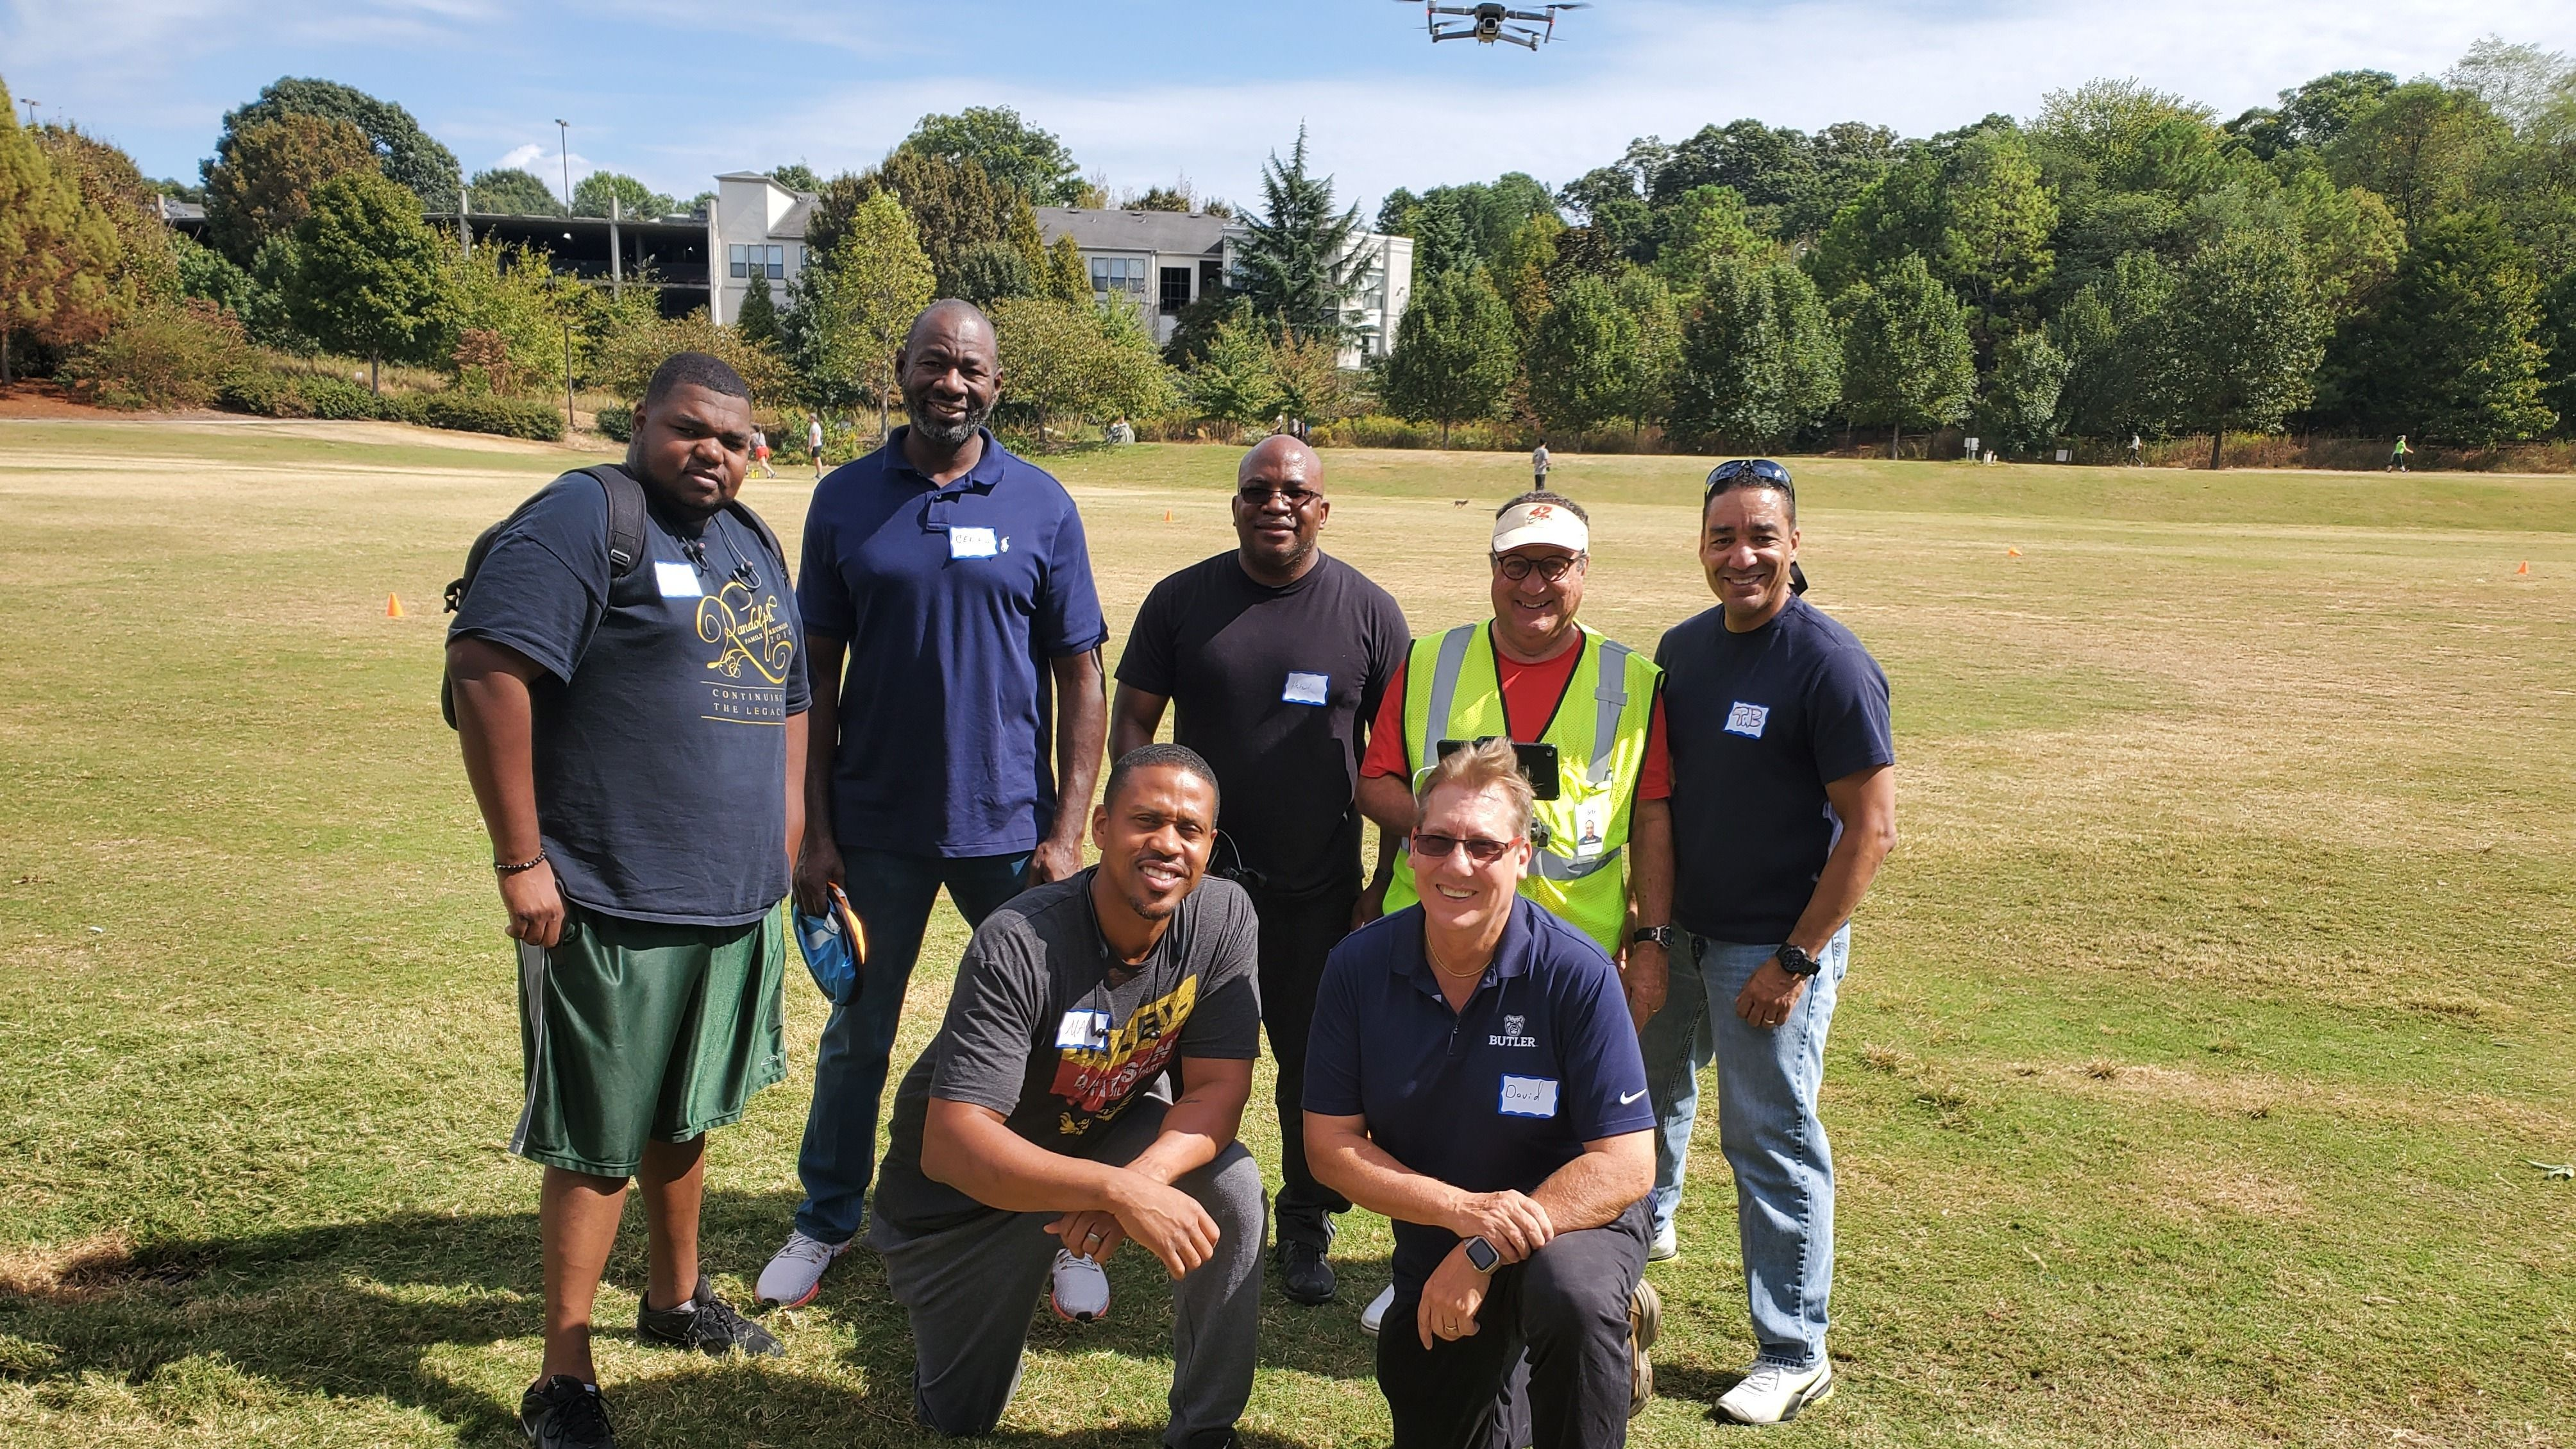 Atlanta Aerial Photography and Drone Fly Meetup